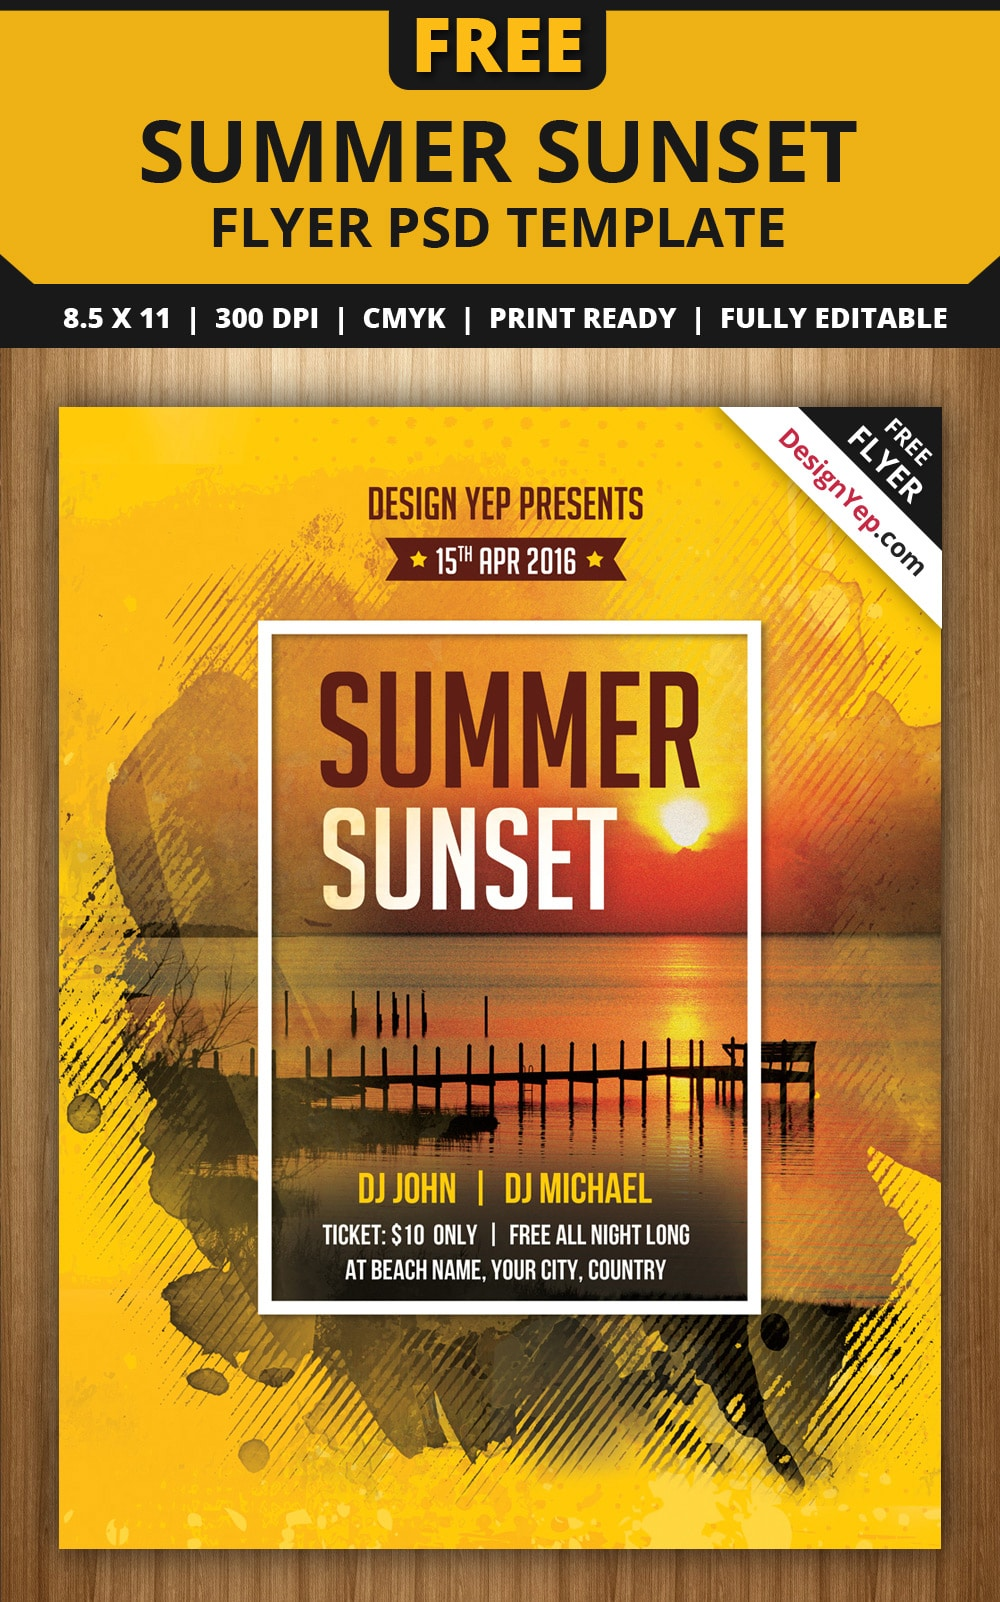 Free flyer templates psd from 2016 css author for Free psd flyer templates